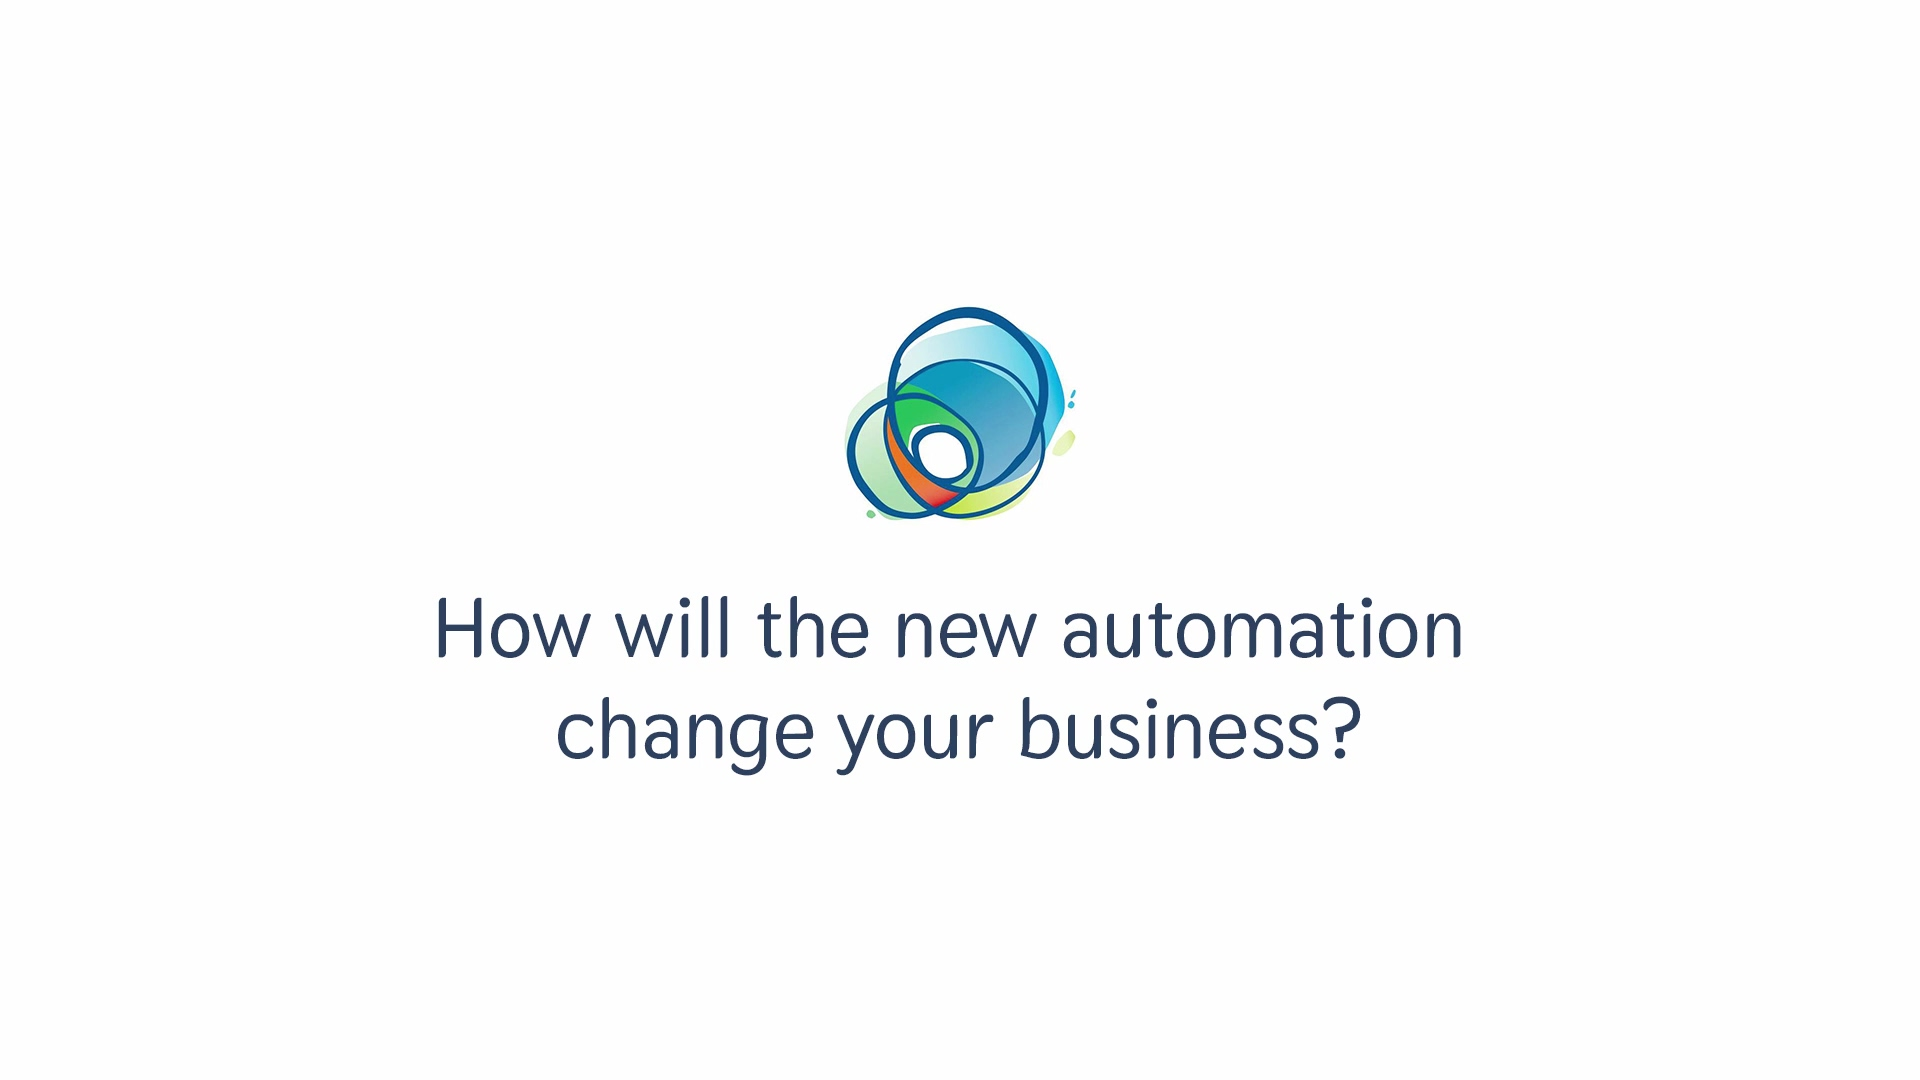 Q4-New Automation Changes Business